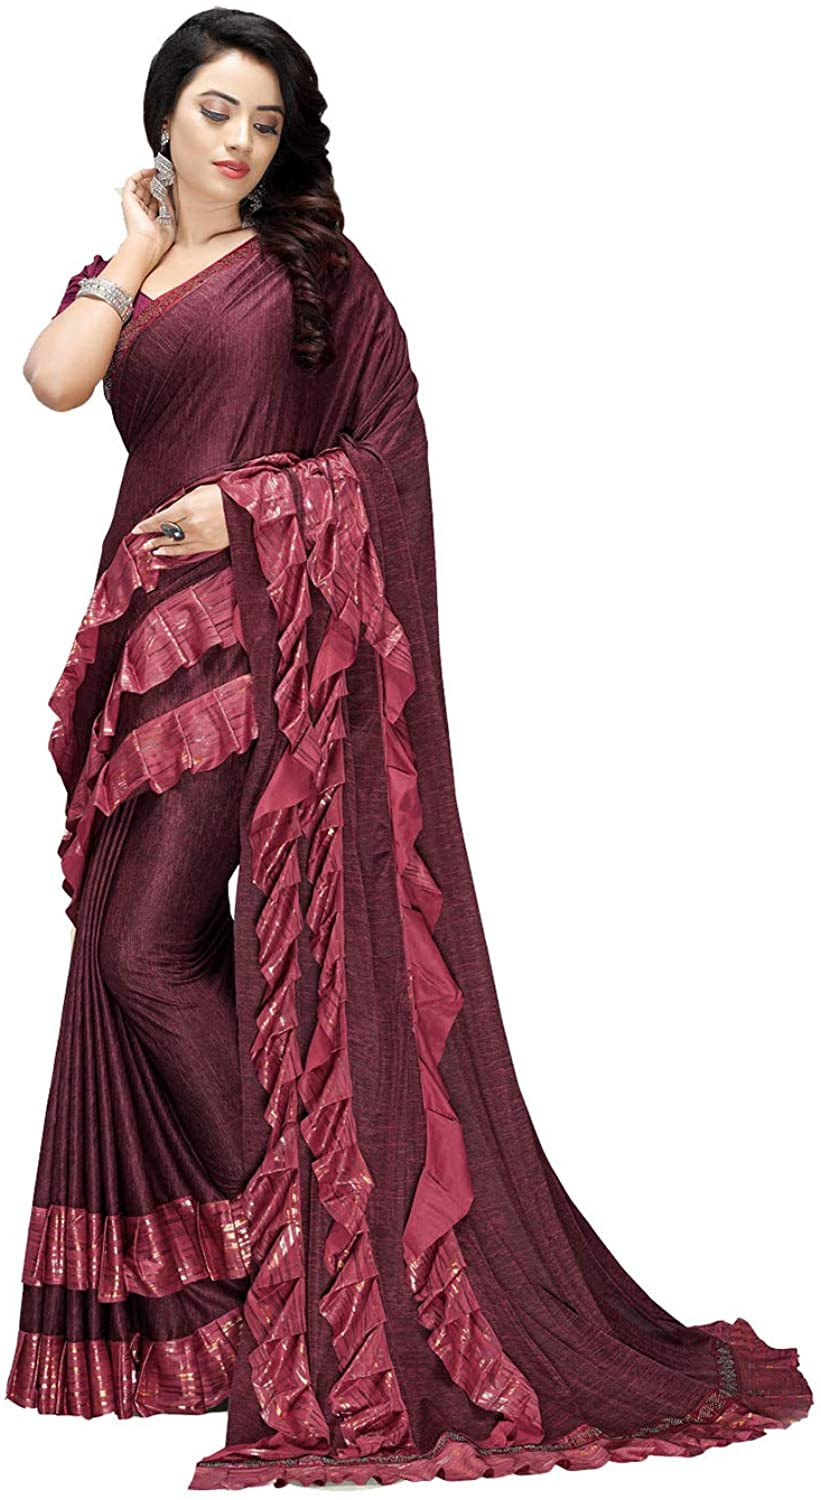 Indian Saree for Women Ethnic Sari Maroon Imported Fabric Sari with Unstitched Blouse. ICW2713-10